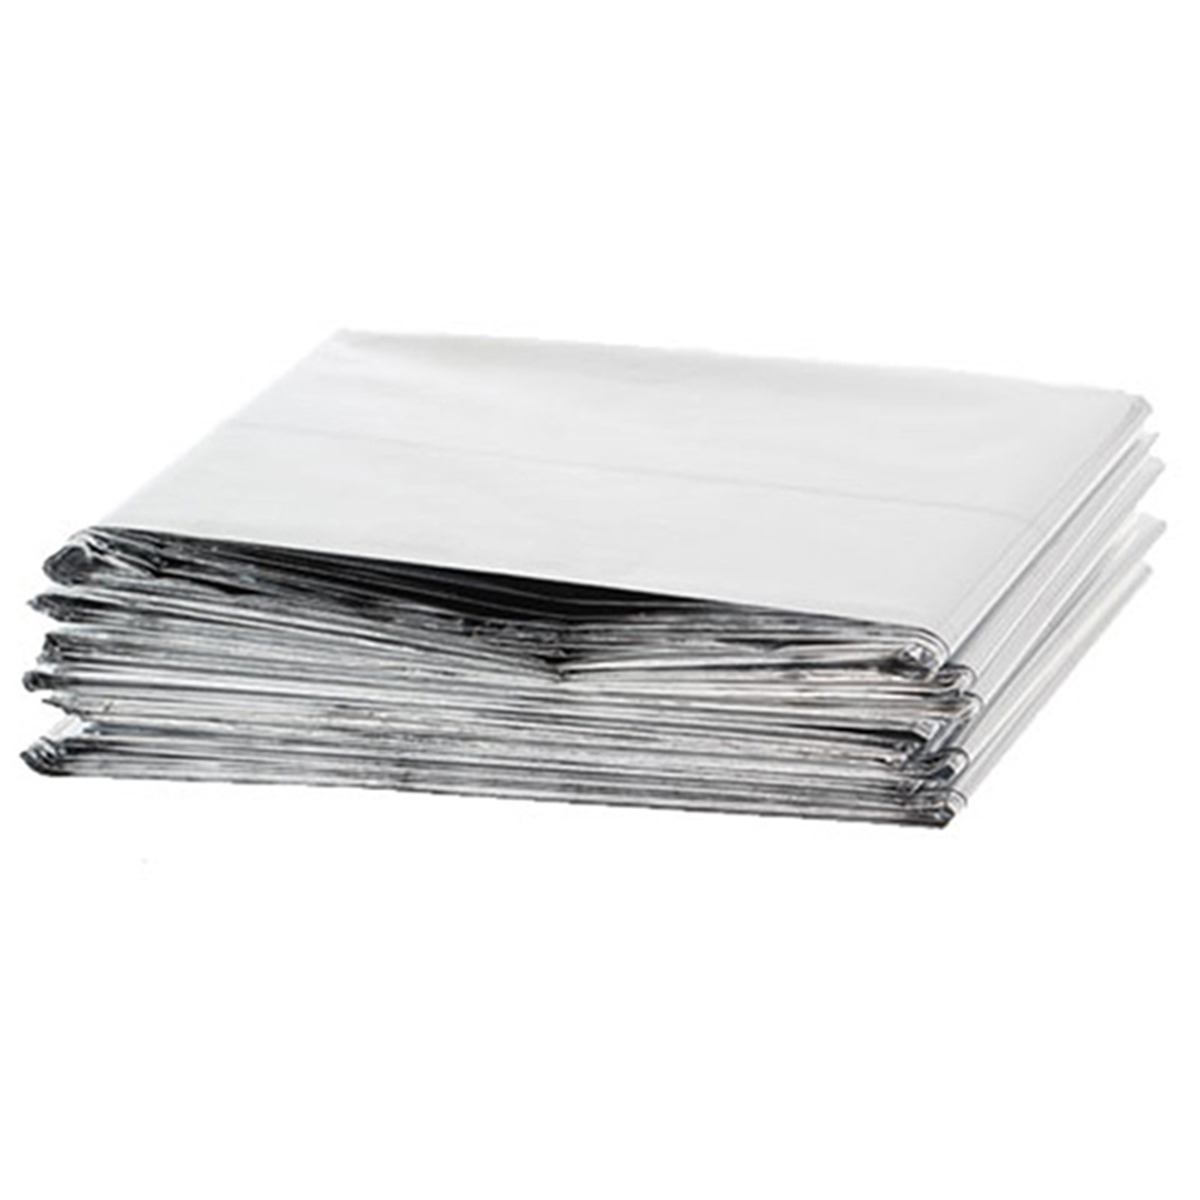 1pc 130*210cm Garden Wall Film Covering Sheet Hydroponic Highly Reflective